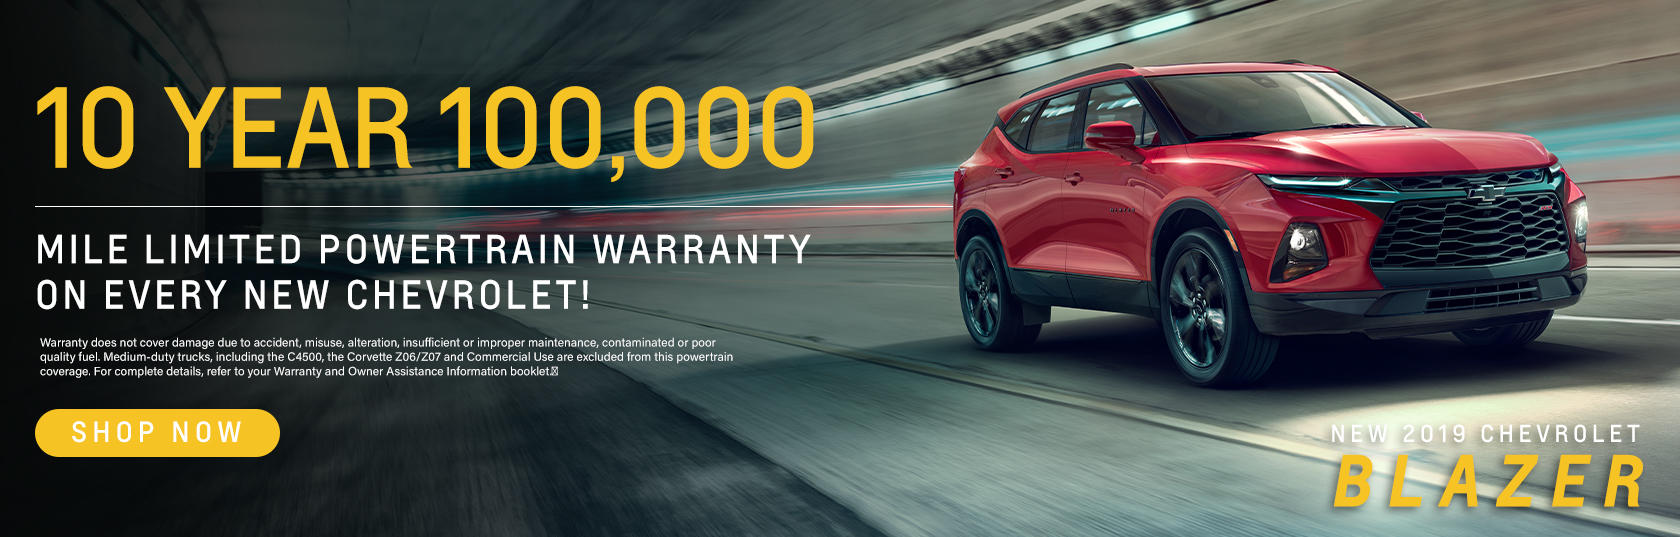 10 Year 100,000 Mile Limited Powertrain Warranty On Every New Chevrolet!